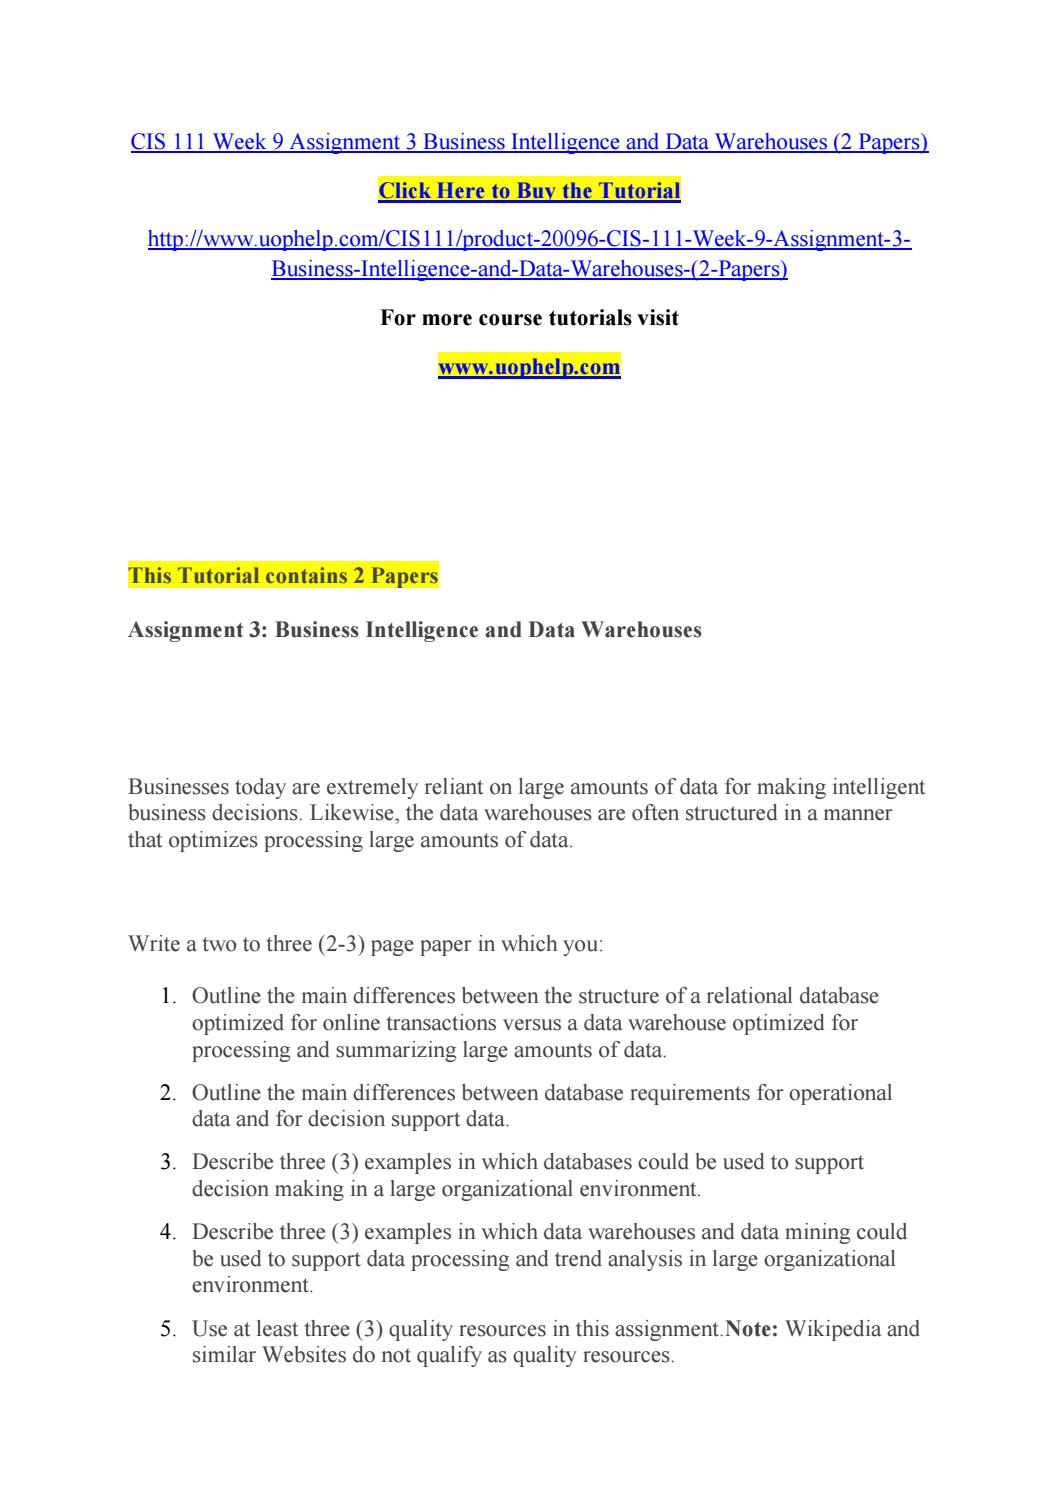 Cis 111 week 9 assignment 3 business intelligence and data warehouses (2  papers)